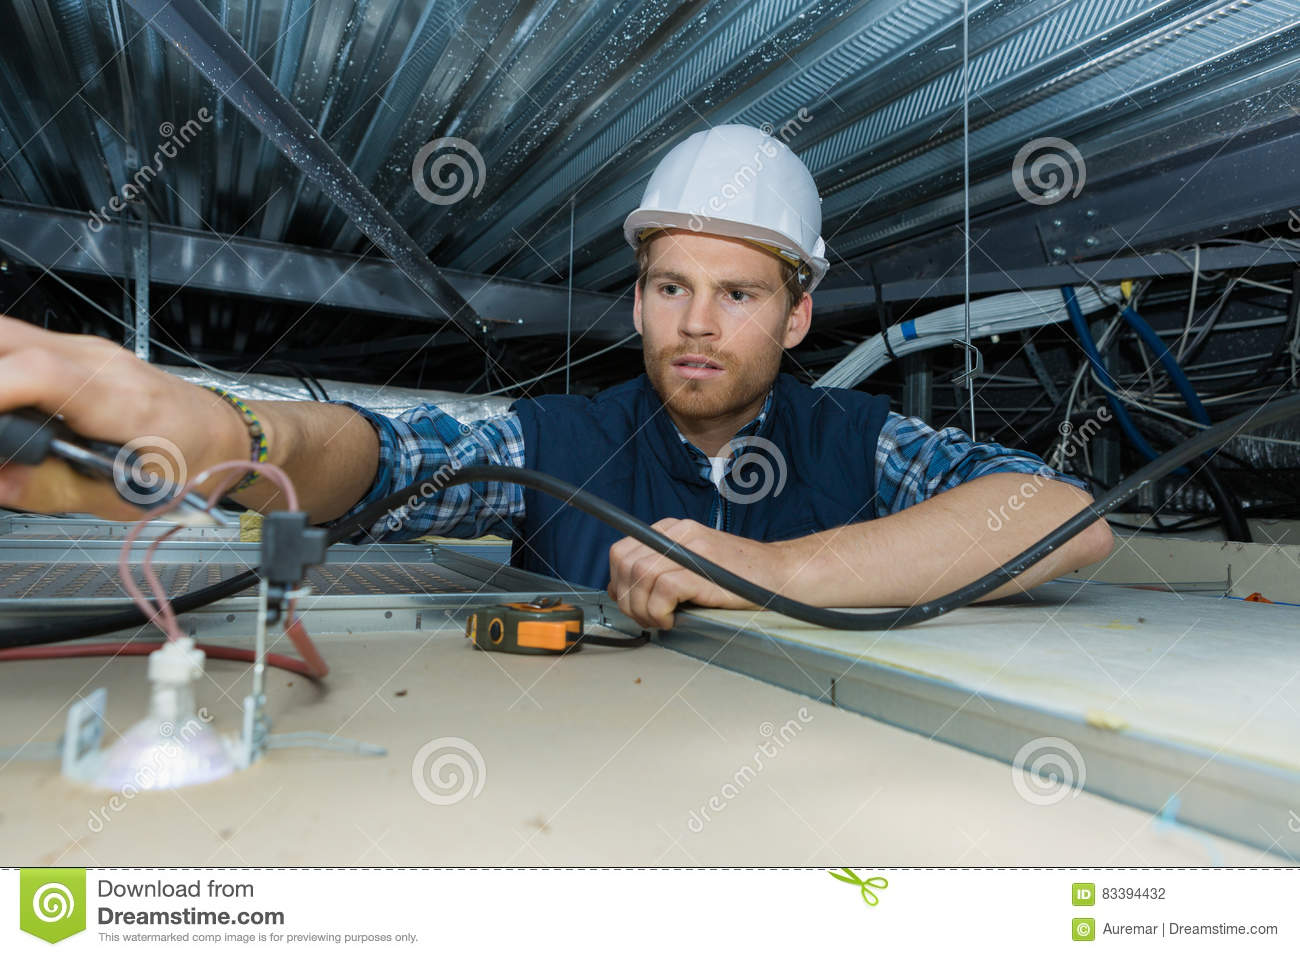 Electrician working with electric wires in factory